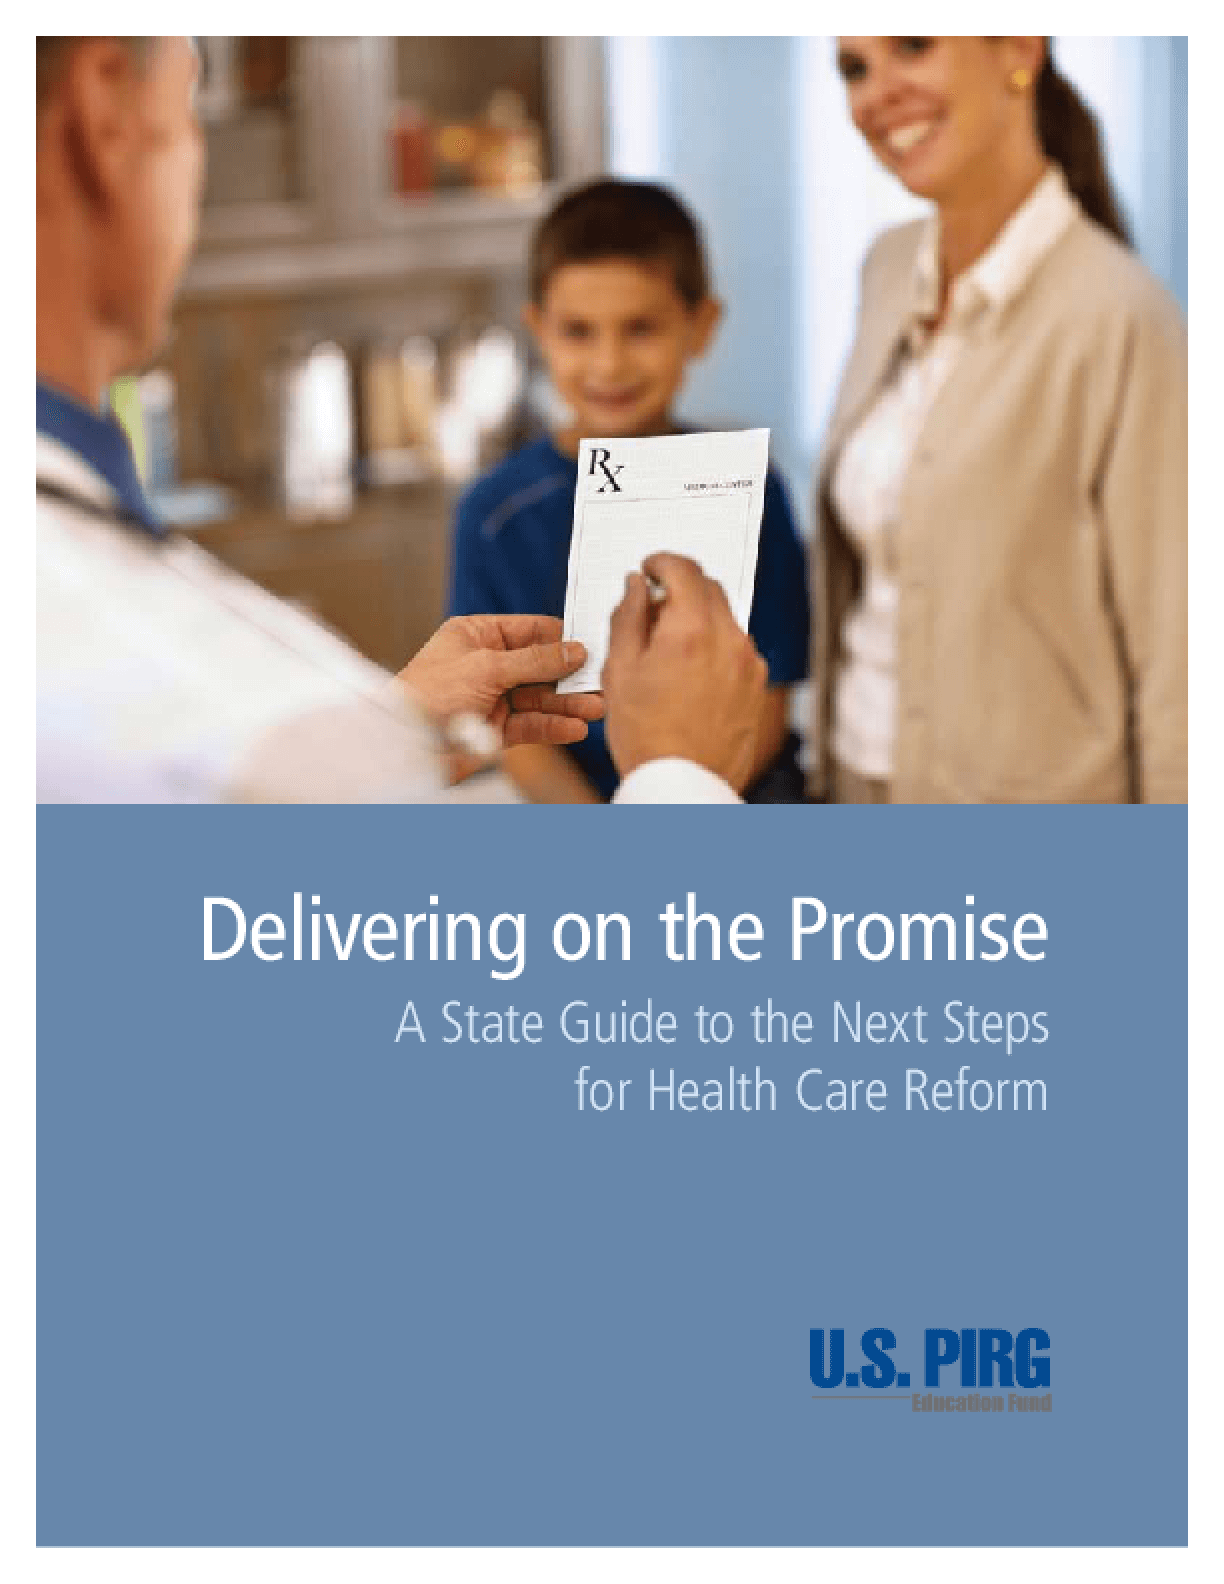 Delivering on the Promise: A State Guide to the Next Steps for Health Care Reform